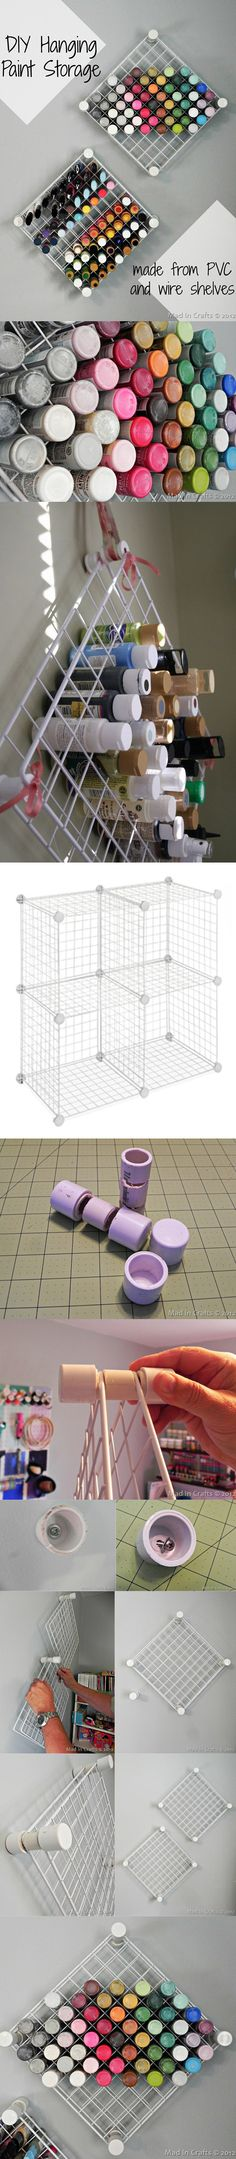 64 Ideas For Diy Organizador Labiales Paint Storage, Craft Storage, Office Deco, Craft Projects, Projects To Try, Diy Organisation, Ideas Para Organizar, Organizer, Getting Organized